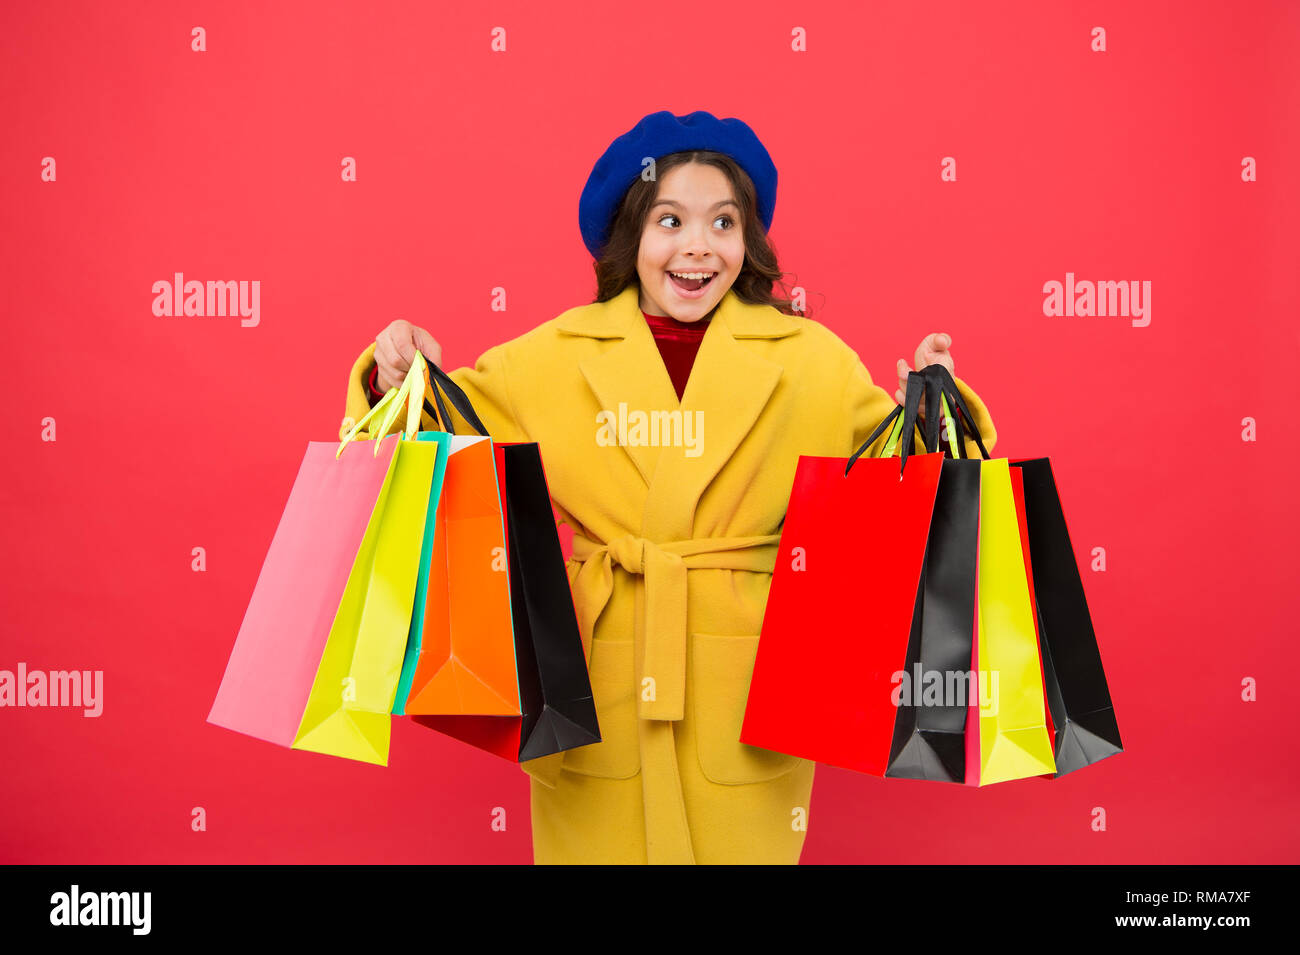 Customer satisfaction. Prime time buy spring clothing. Obsessed with shopping. Girl cute kid hold shopping bags. Get discount shopping on birthday holiday. Nice purchase. Fashionista enjoy shopping. - Stock Image